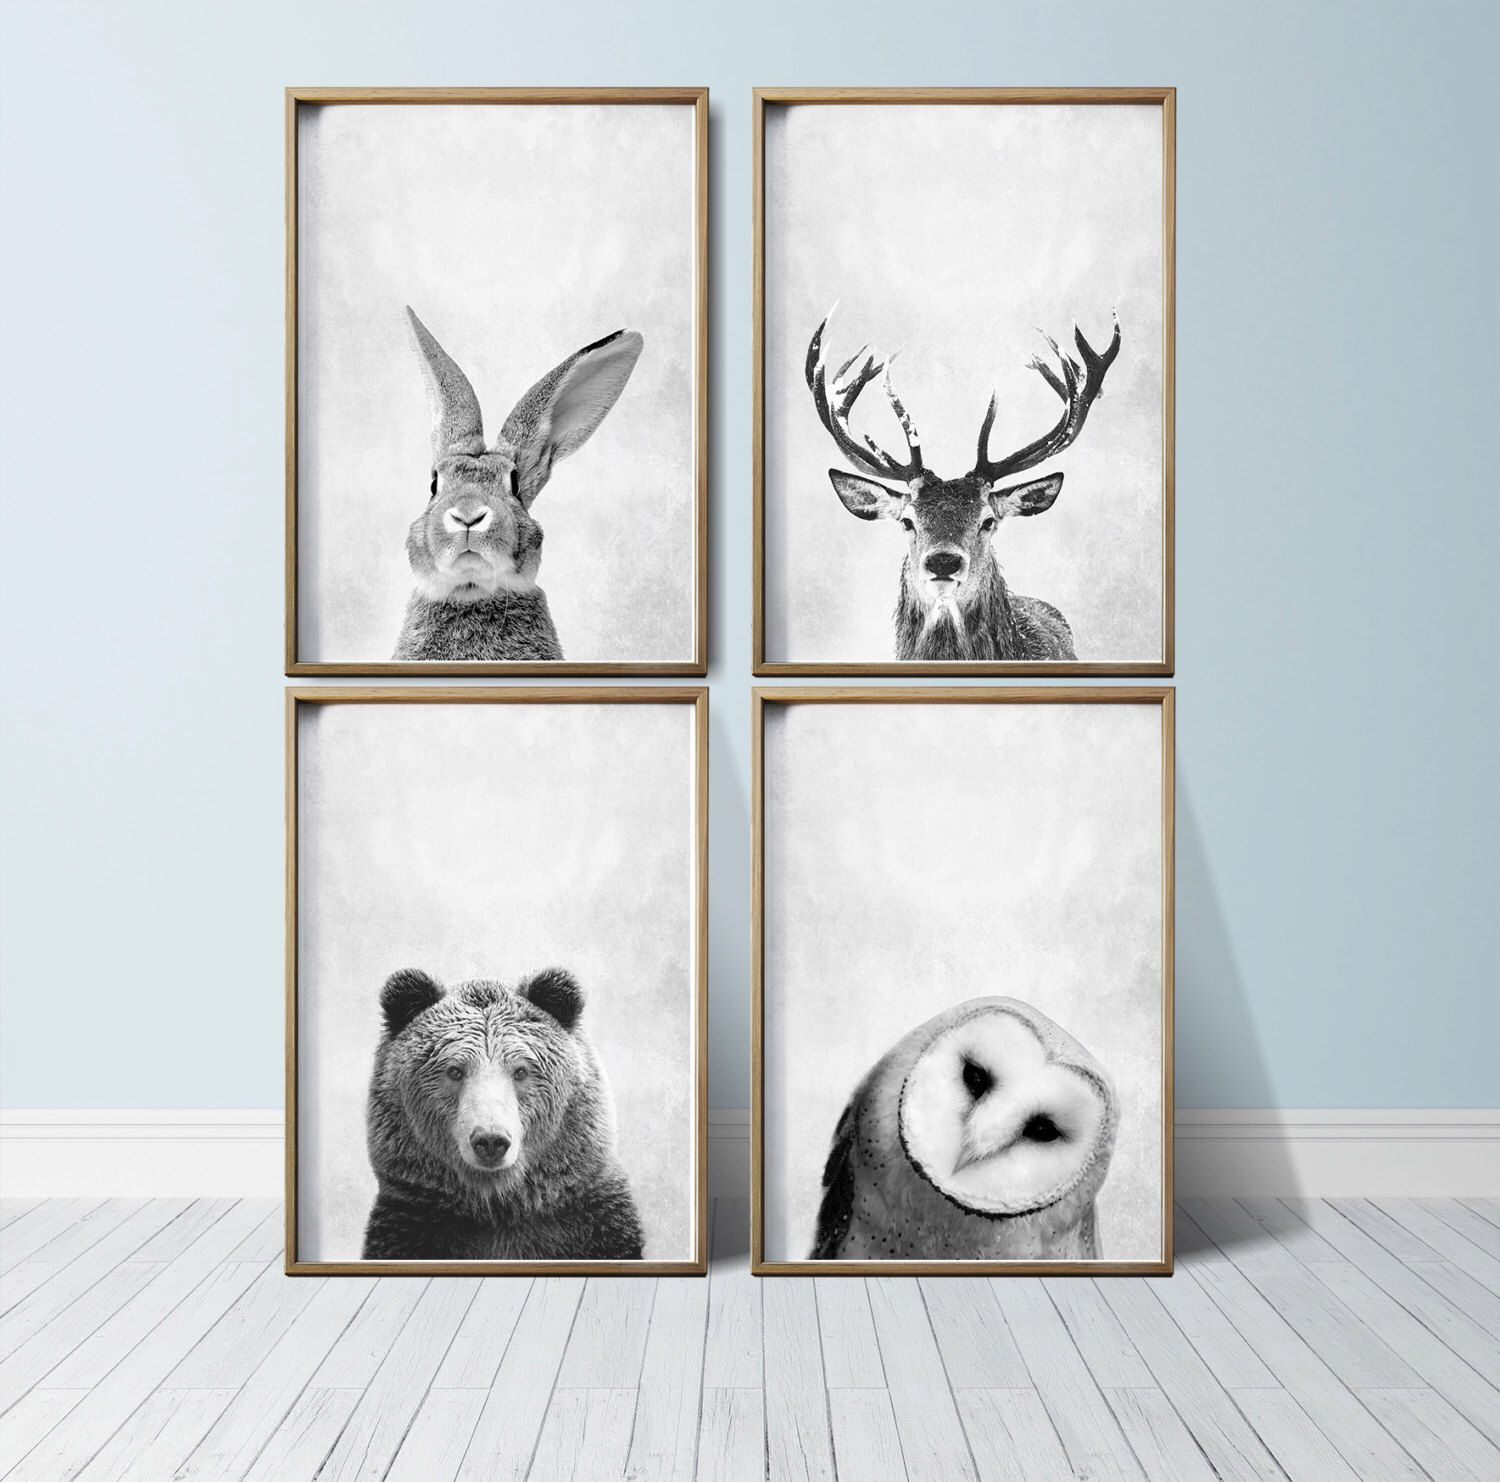 Animal Print Wall Art nursery wall art animal print art woodland nursery decor nursery